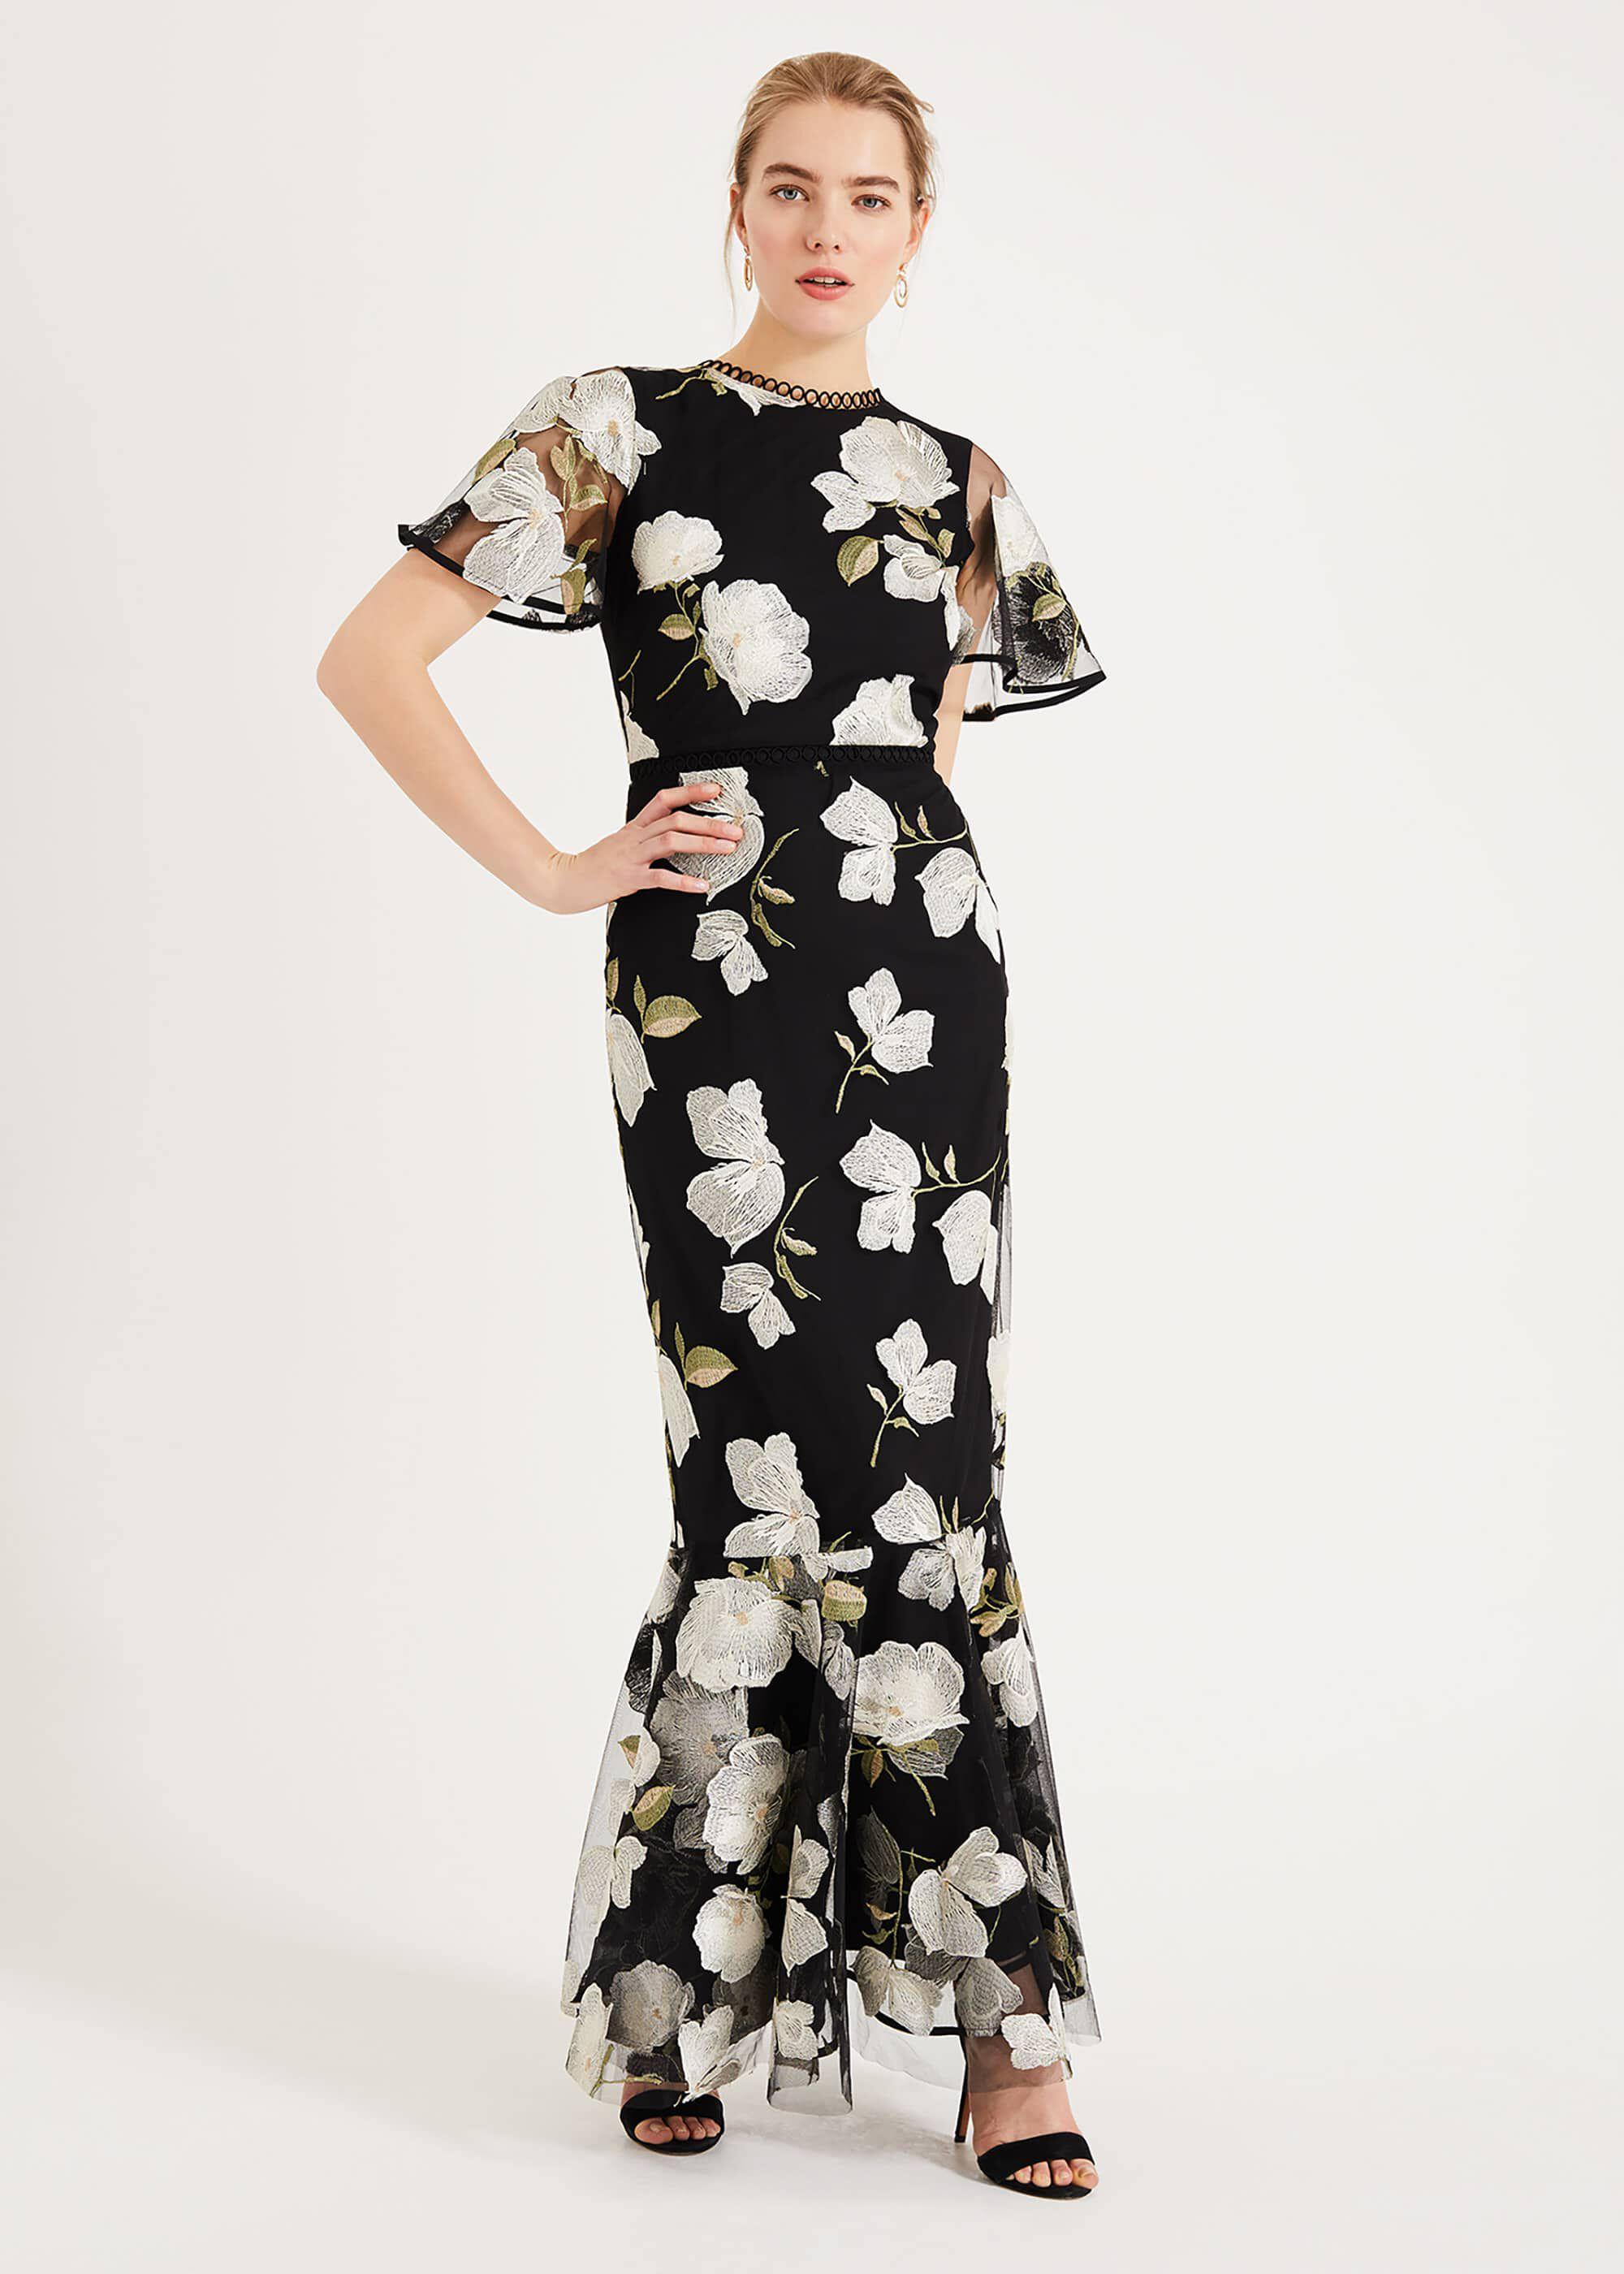 Phase Eight Christine Embroidered Maxi Dress, Black, Maxi, Occasion Dress